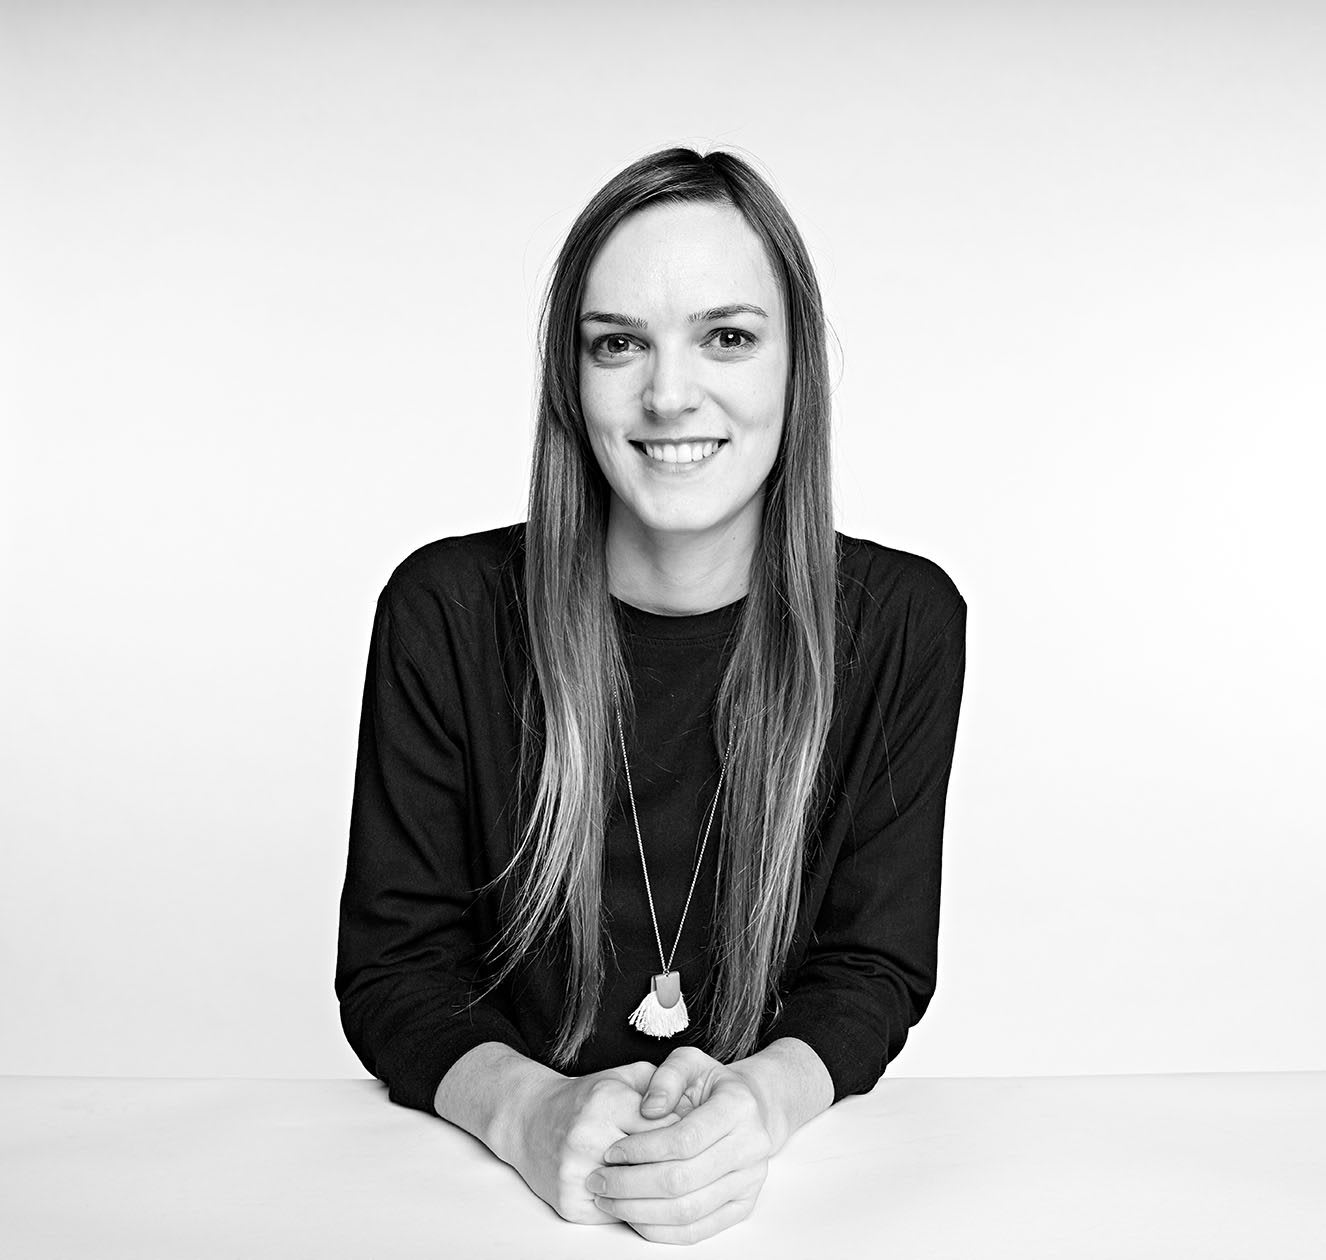 Woman smiling smiling in a black and white portrait picture, Brandi Cox, adidas, employee